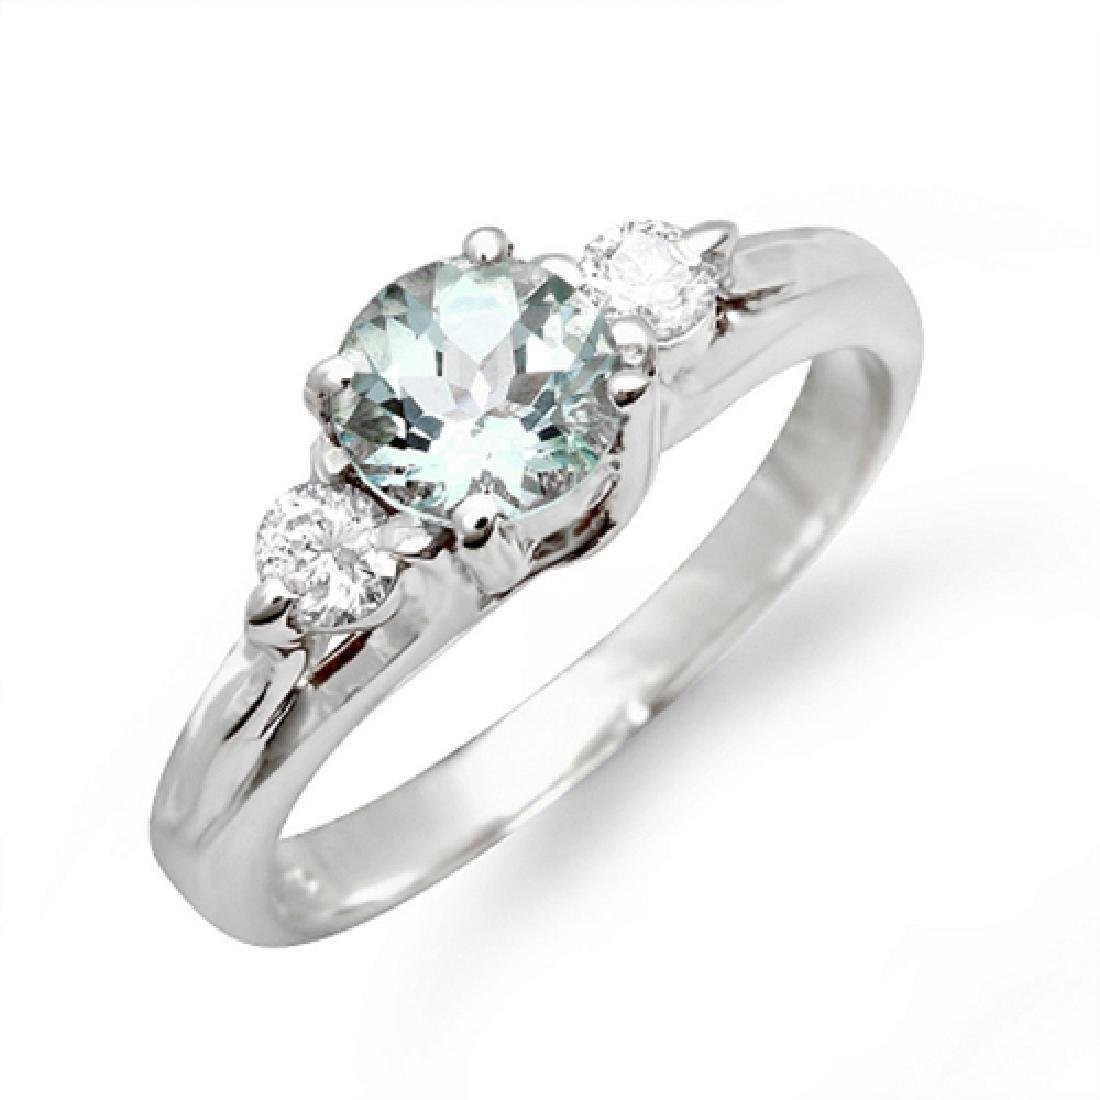 1.40 Carat Natural Aquamarine 18K Solid White Gold